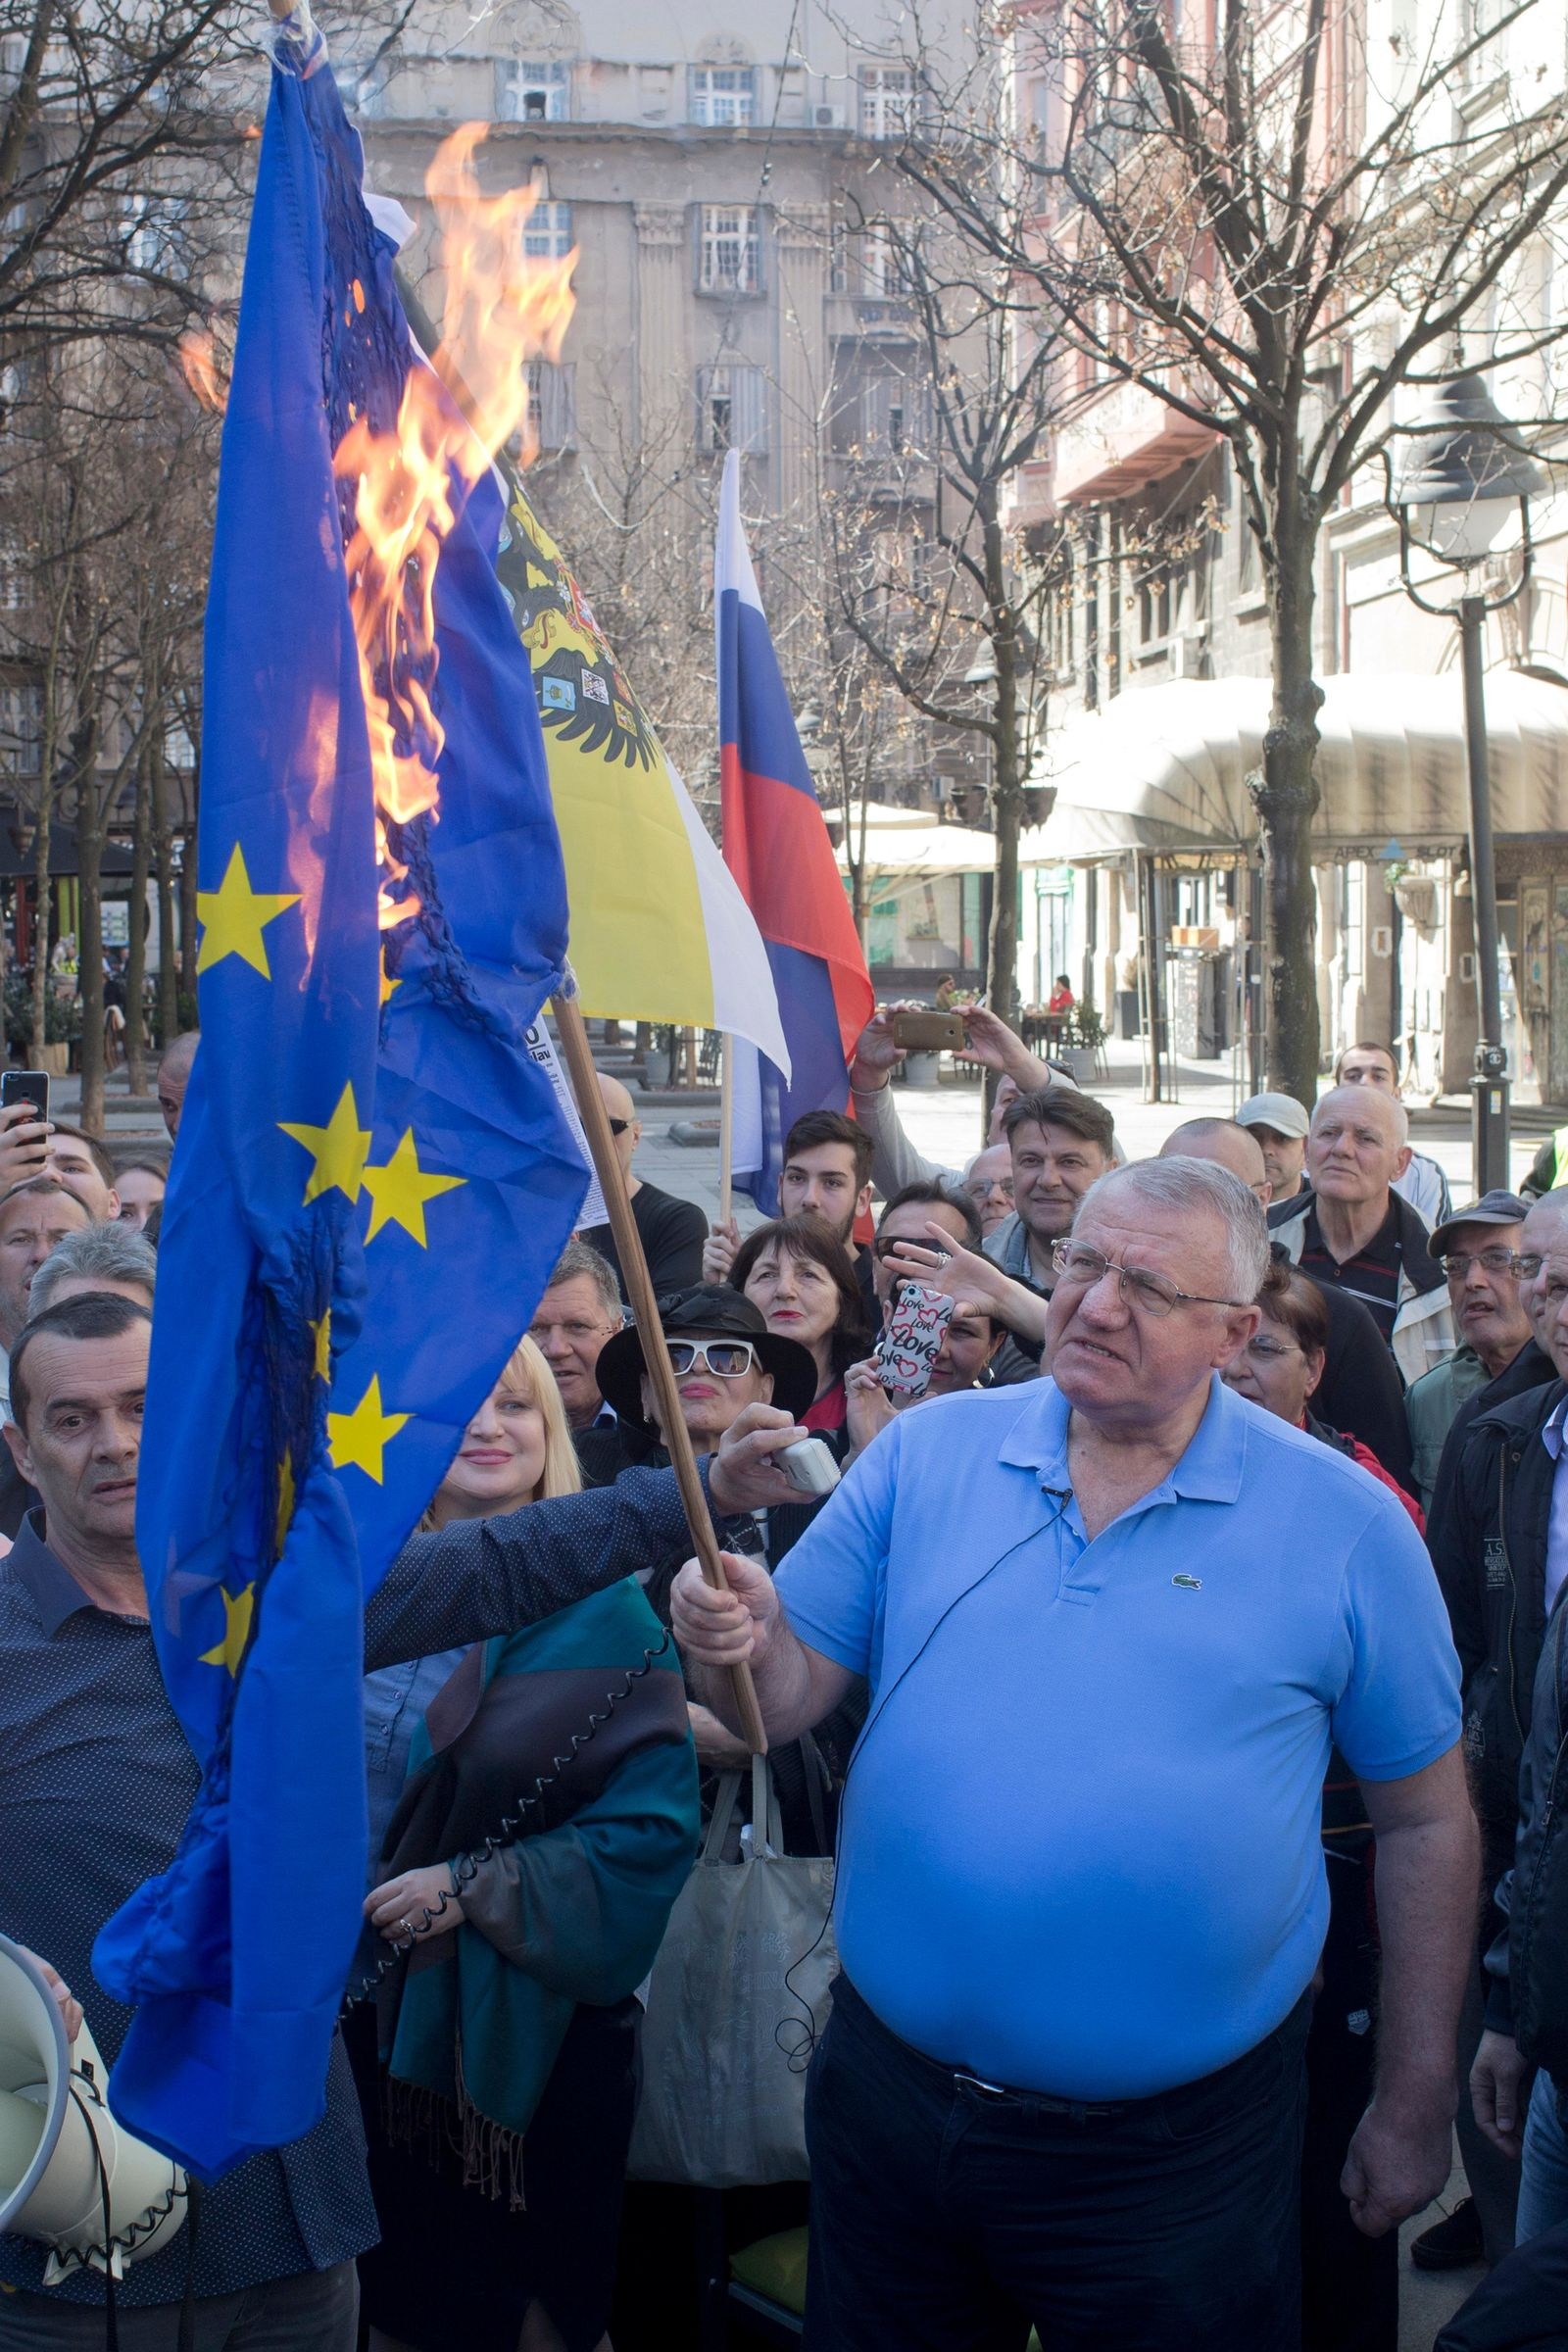 Vojislav Seselj, front, the leader of the ultranationalist Serbian Radical Party, holds a burning EU flag as he and others gather for a protest in Belgrade, Serbia, Sunday, March 24, 2019.{ } (AP Photo/Marko Drobnjakovic)